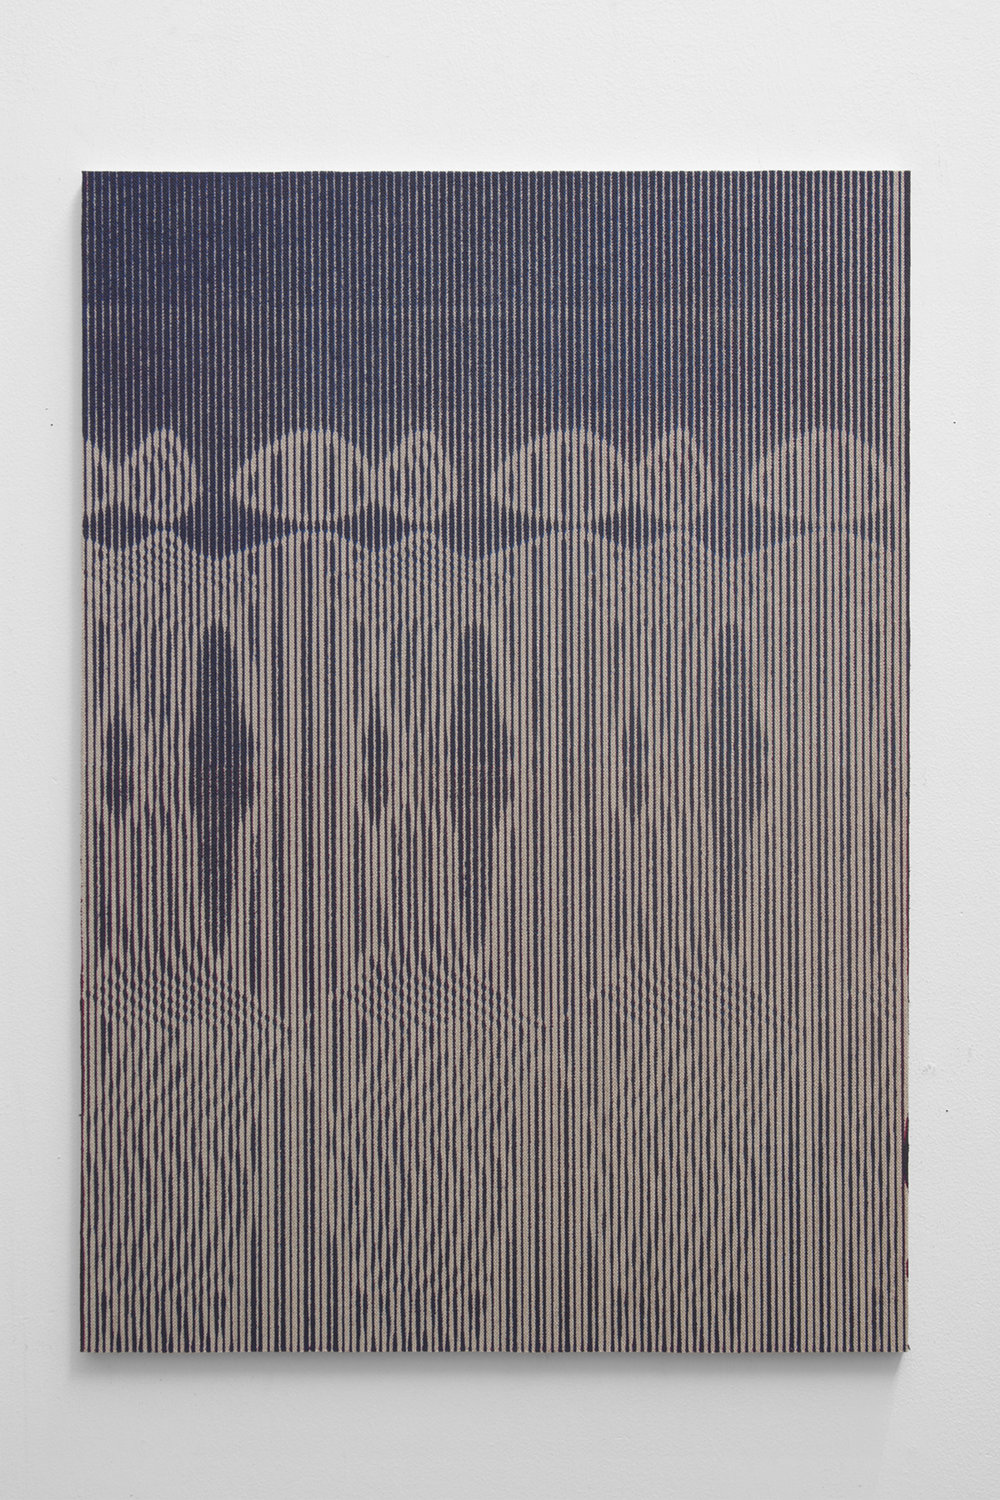 Graham McDougal,  Reapers , 33x23 inches, acrylic, silkscreen, on linen mounted to panel, 2018.